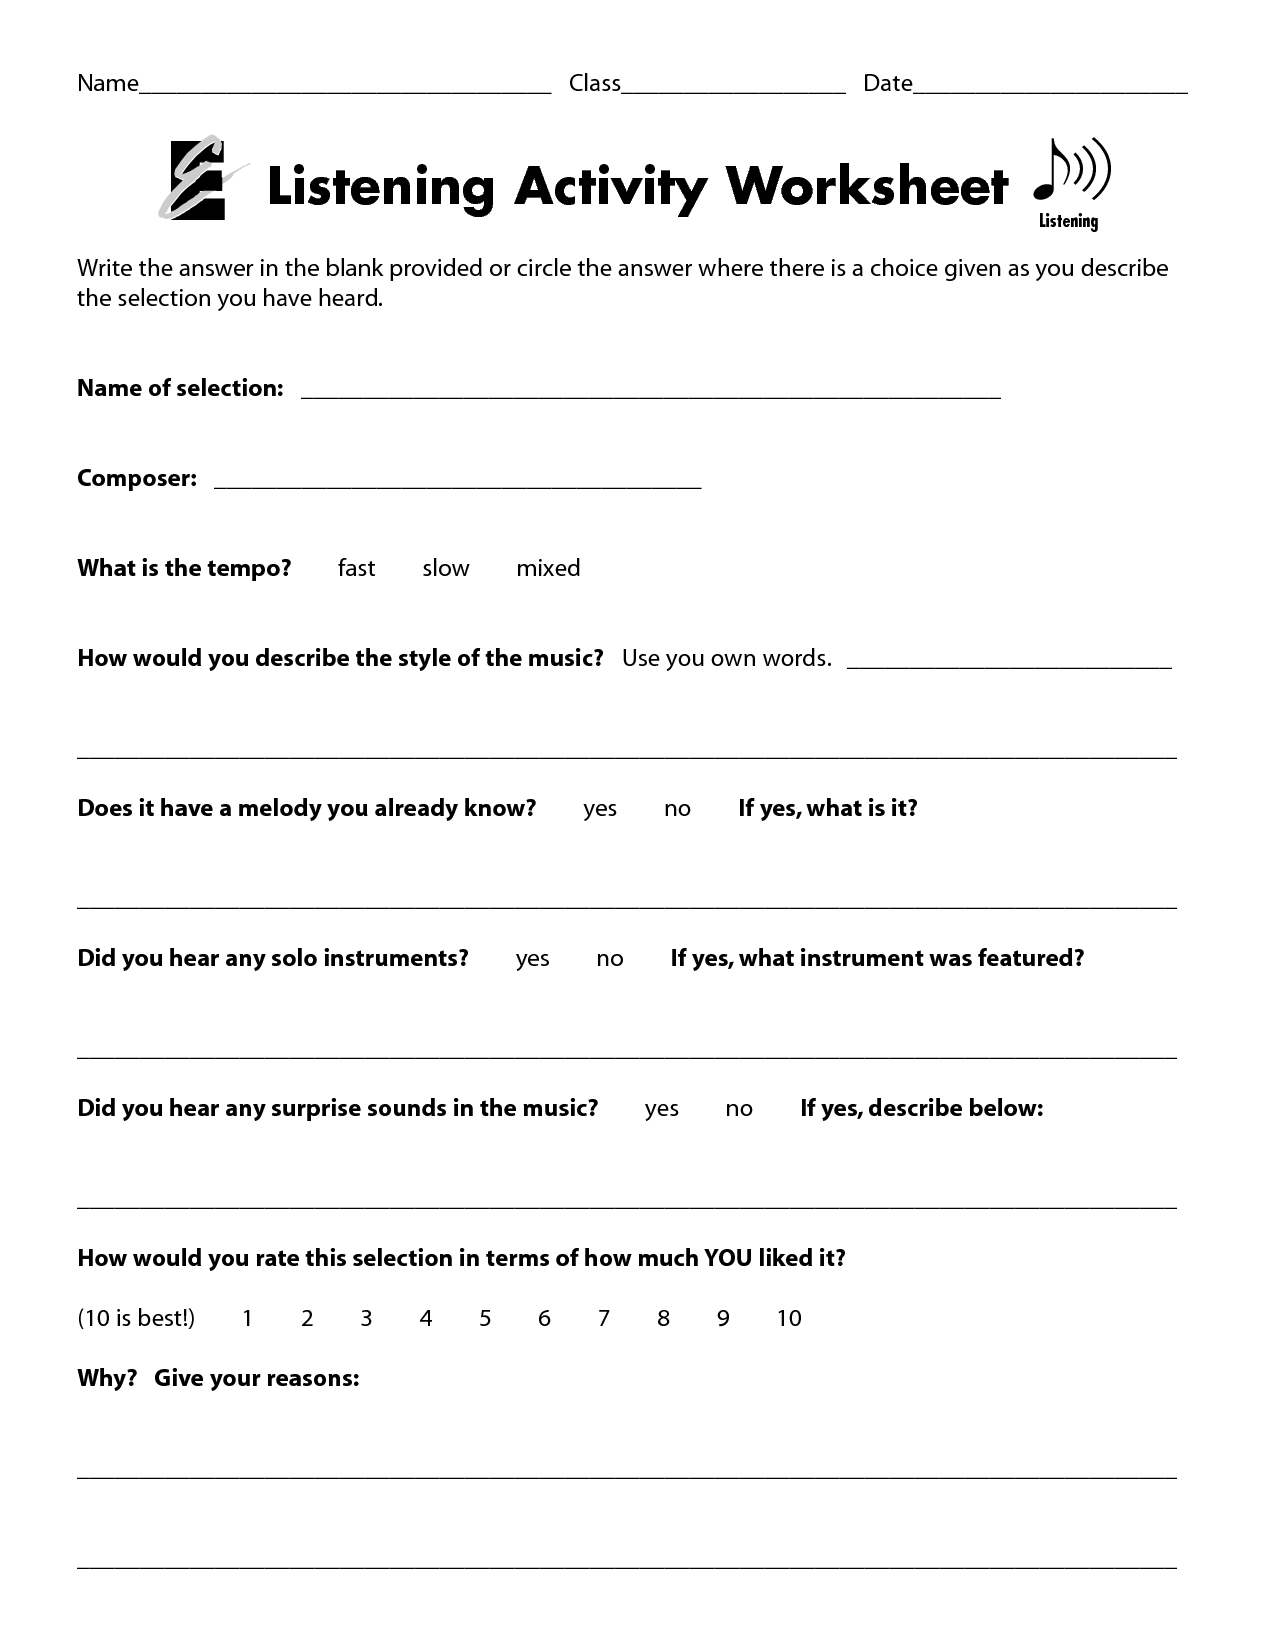 Free Worksheet Listening Skills Worksheets listening walk worksheet the quiet way home school theme activity worksheet